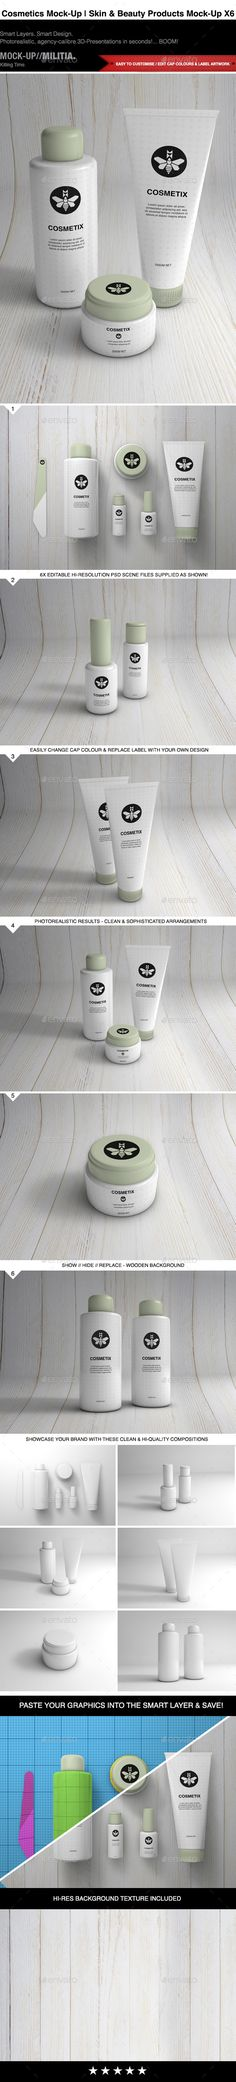 Cosmetics Mock-Up | Toiletries & Make Up Mock-Up | Download: http://graphicriver.net/item/cosmetics-mockup-toiletries-make-up-mockup/11043438?ref=ksioks